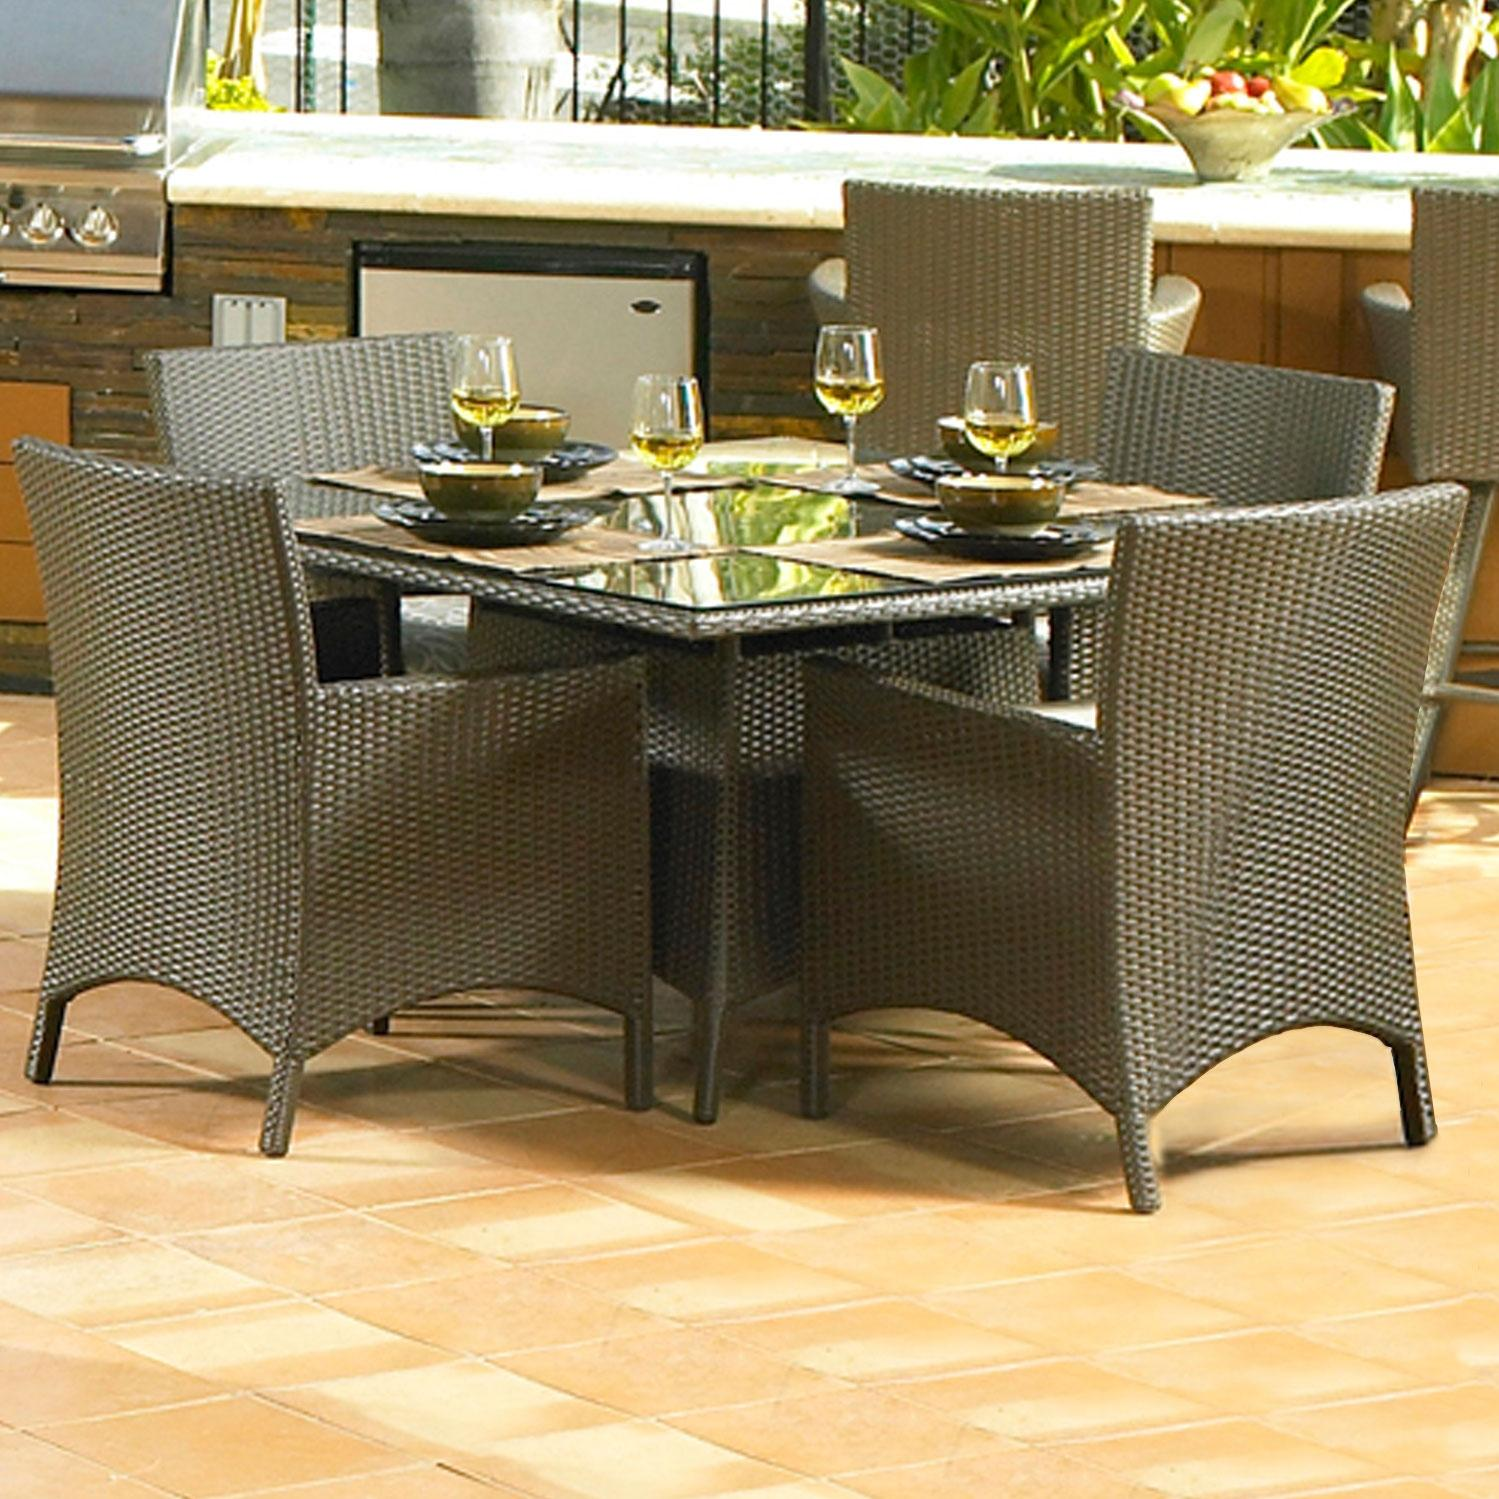 North Cape Melrose 5 Pc Wicker Patio Dining Set - 48 Inch